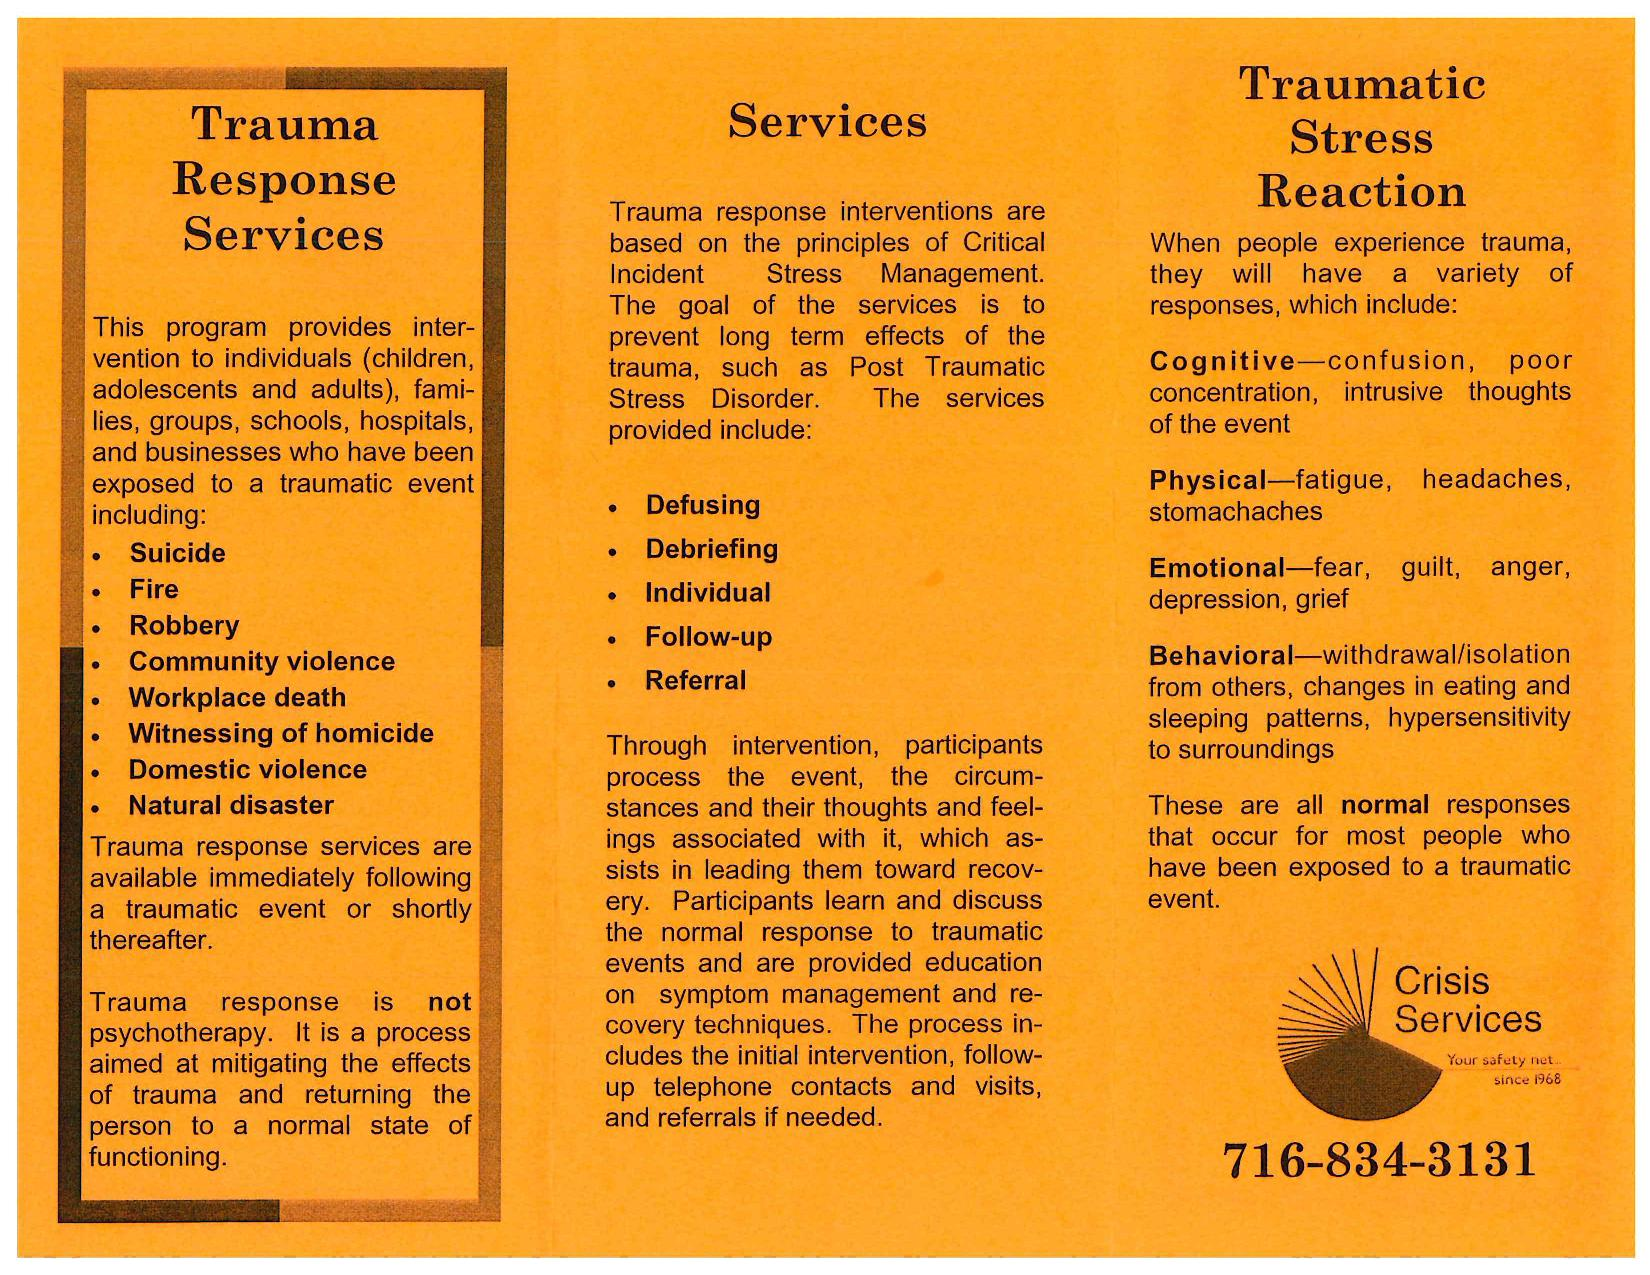 Crisis Services Traumatic Stress page 001